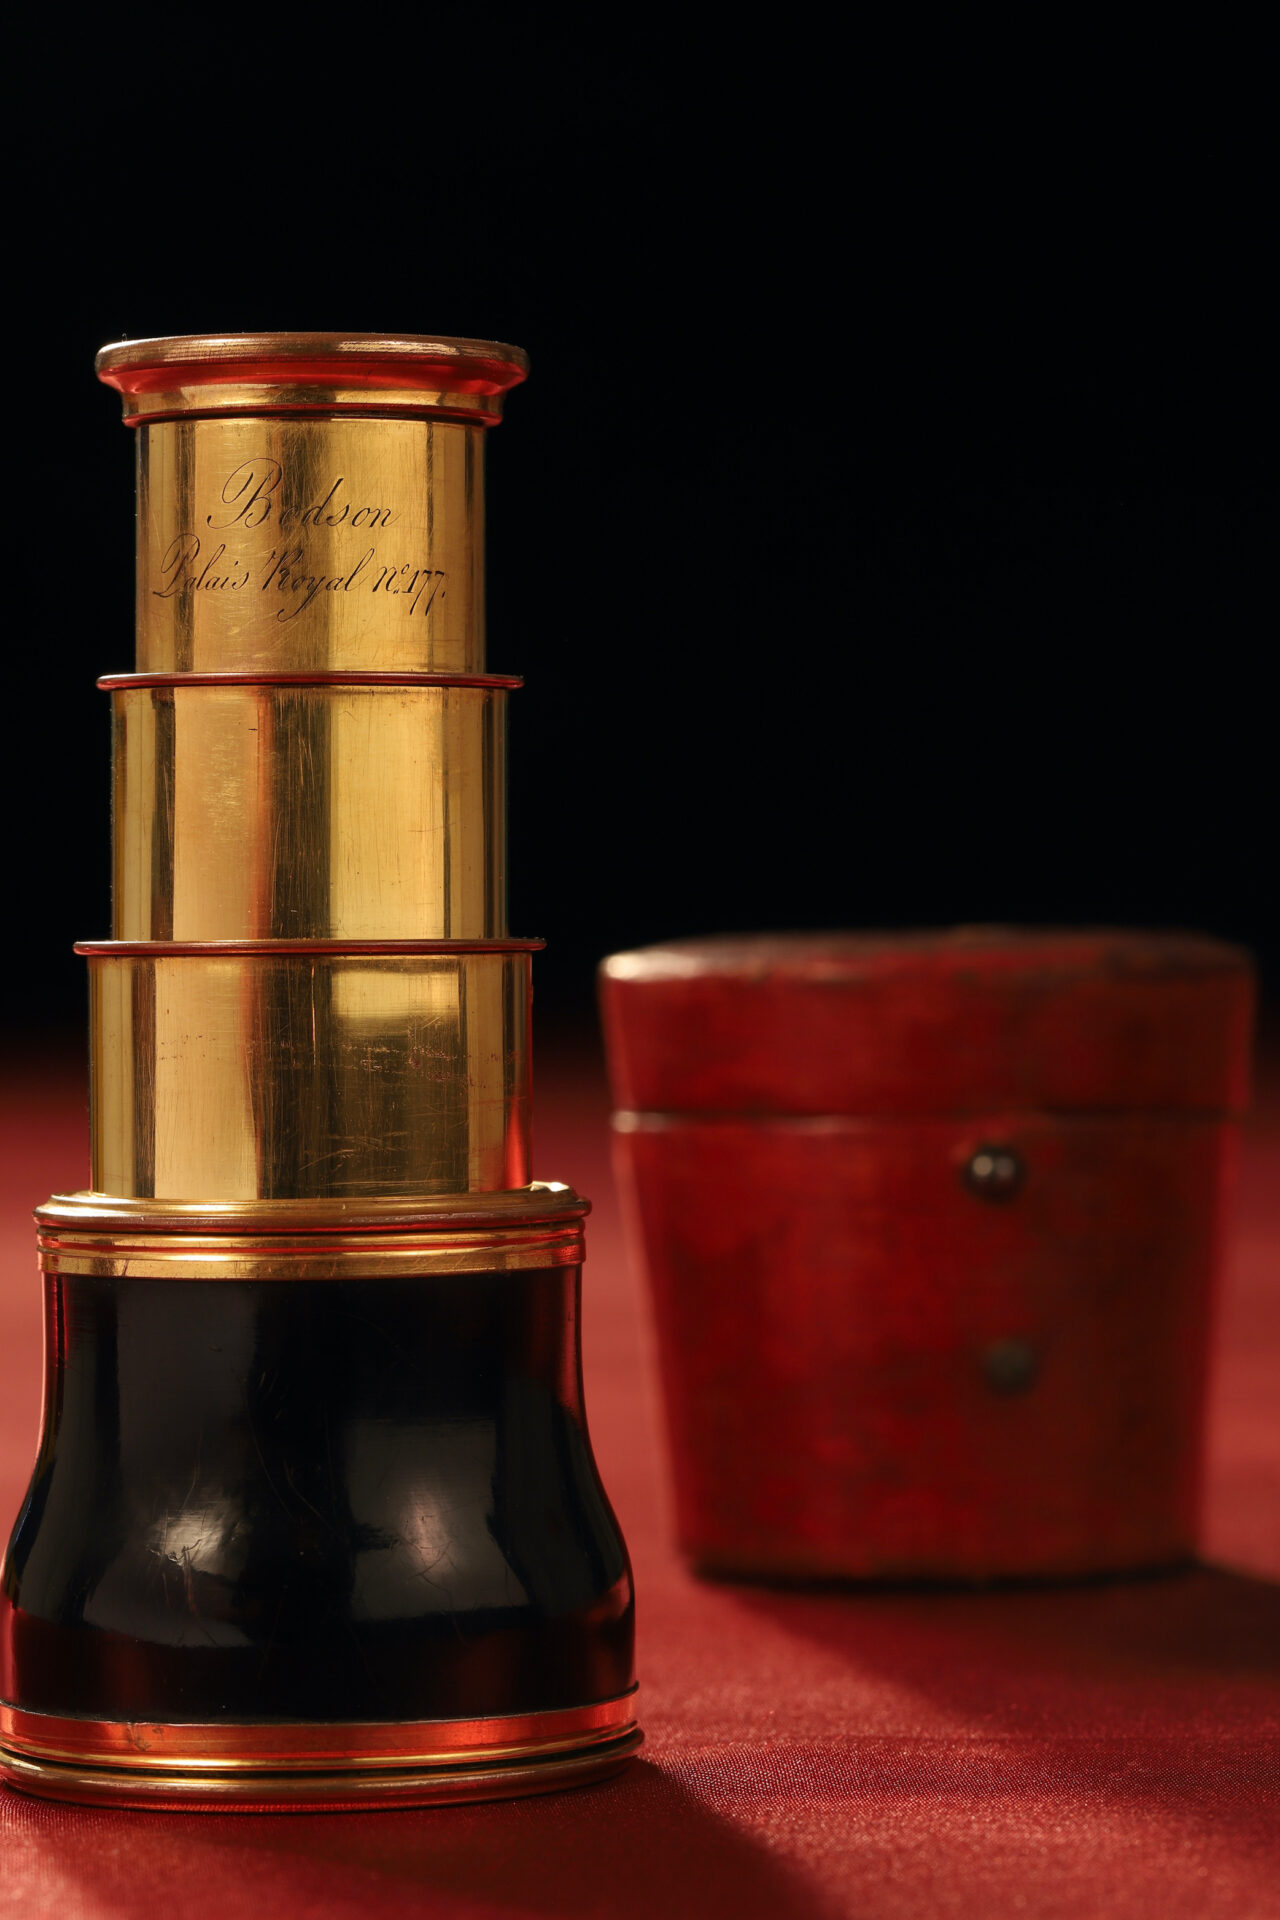 Image of extended Bodson Monocular Spyglass c1825 together with its case